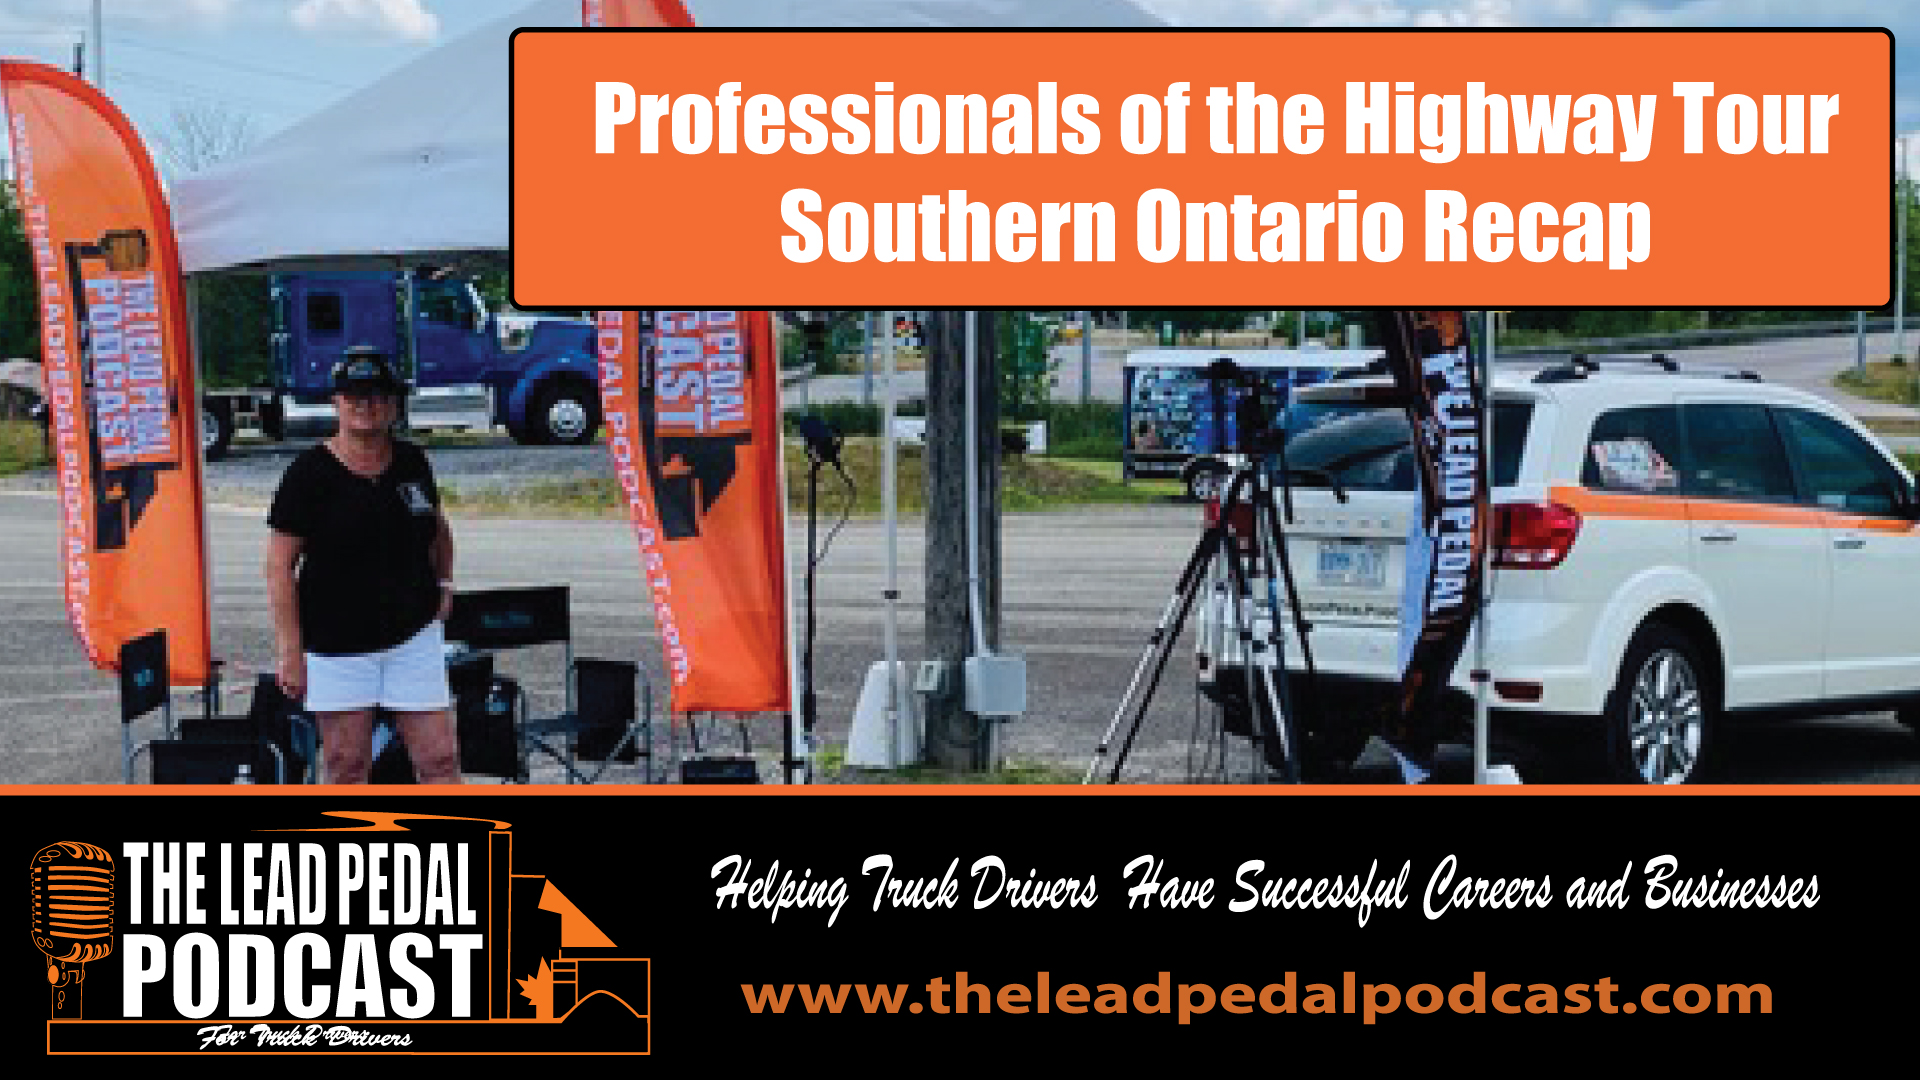 Recap of the Southern Ontario Professionals of the Highway Tour